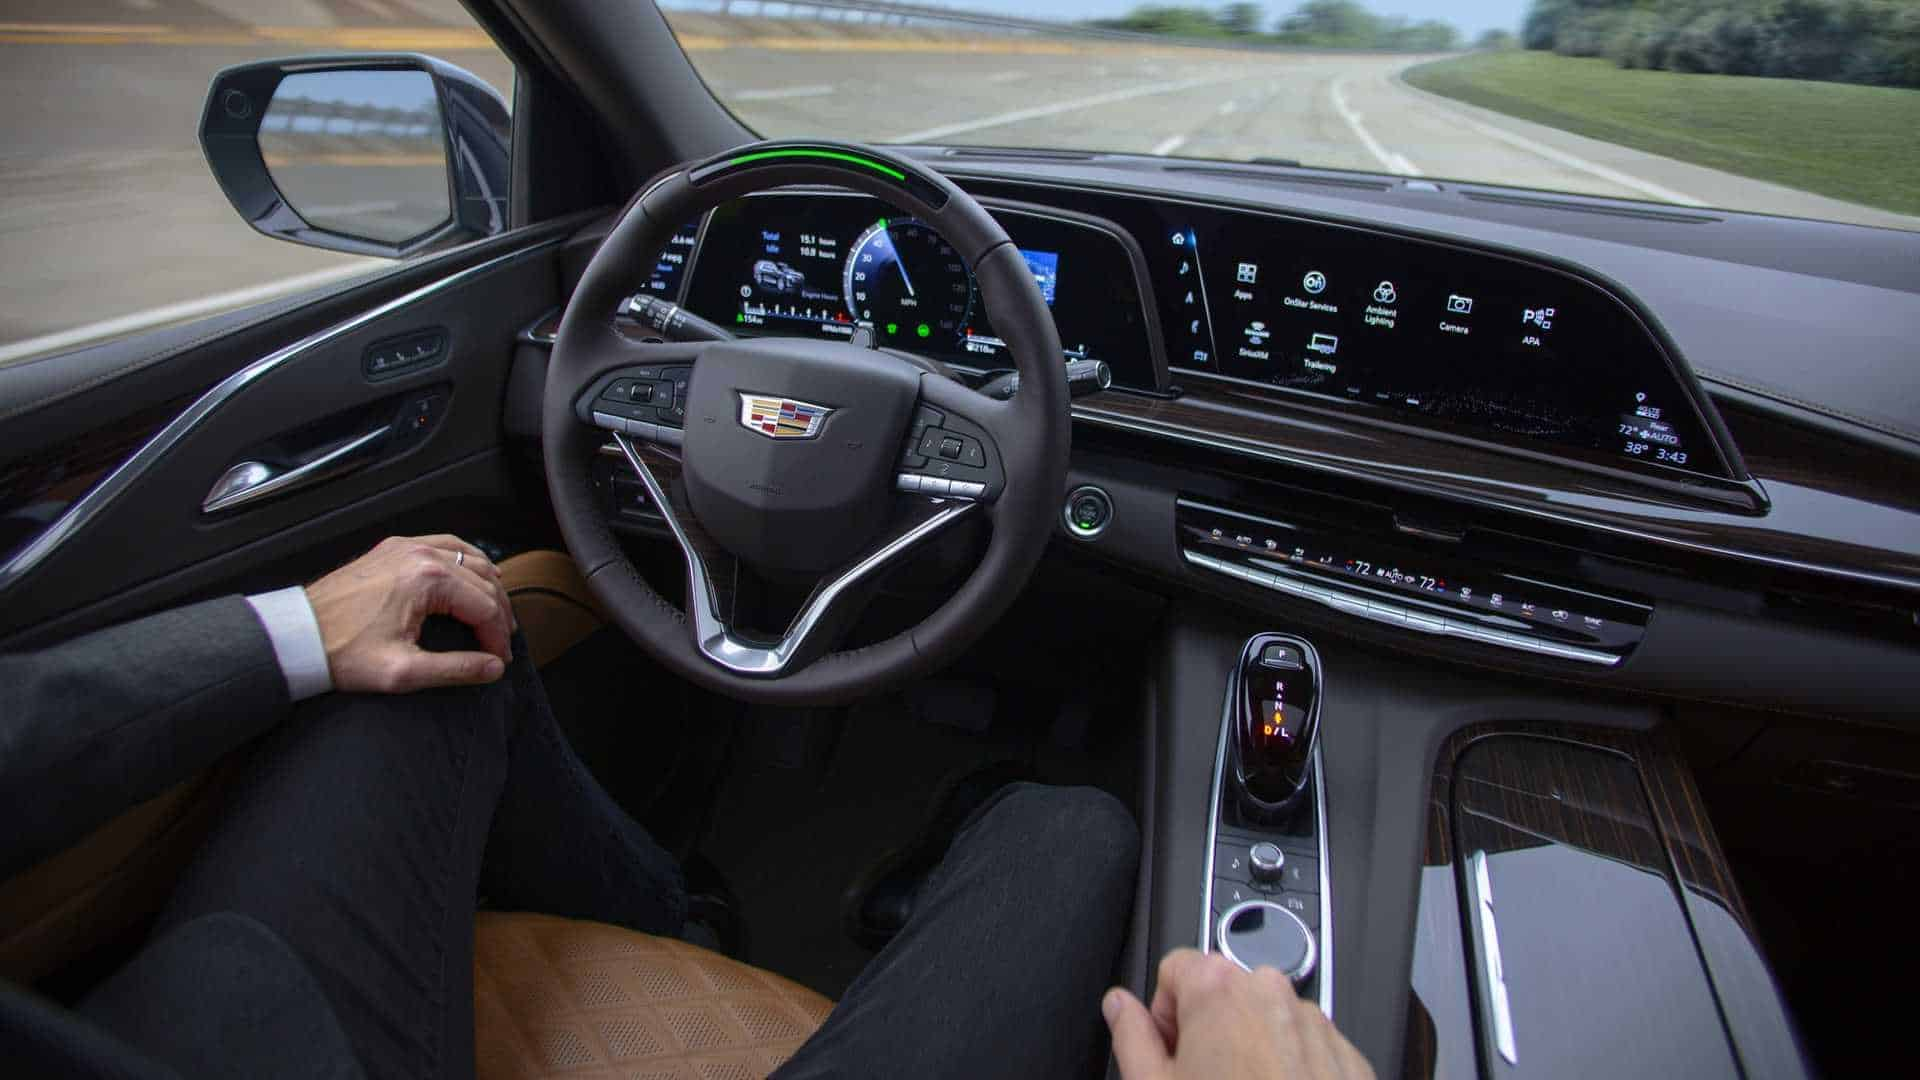 New, 2021 Cadillac Escalade Super Cruise Hands-Free Driving